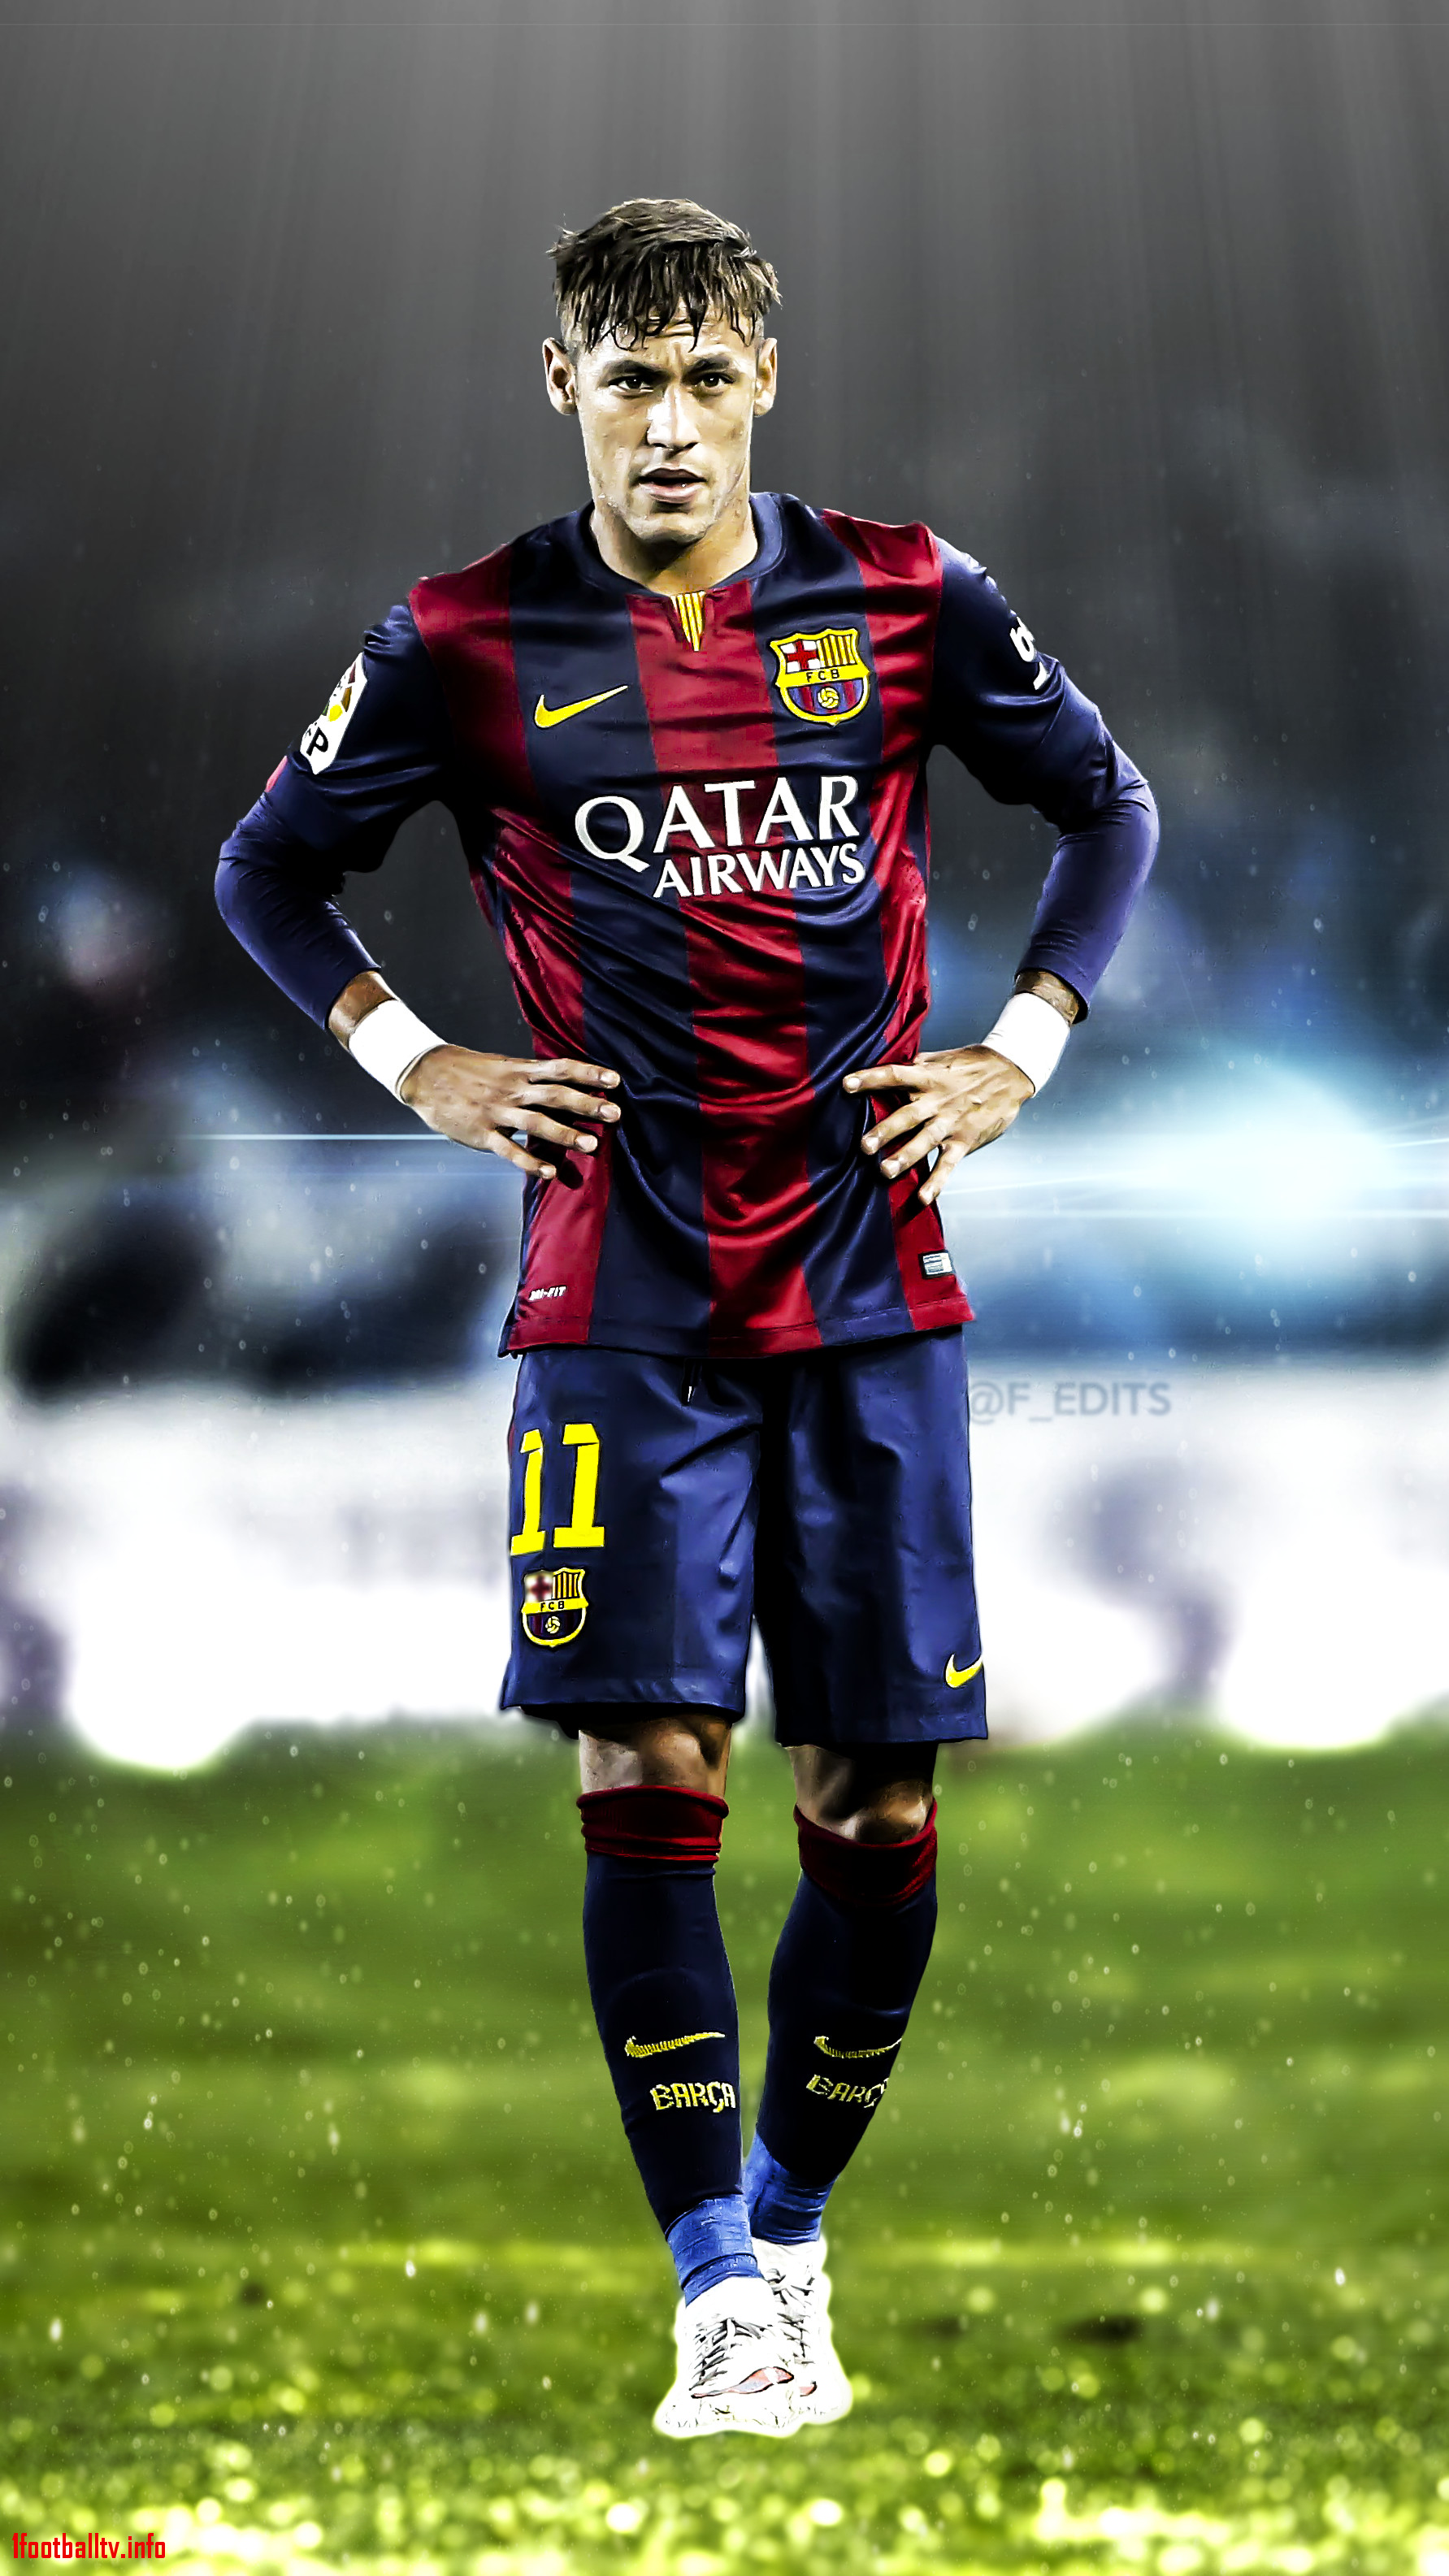 Neymar Wallpapers Hd 79 Background Pictures